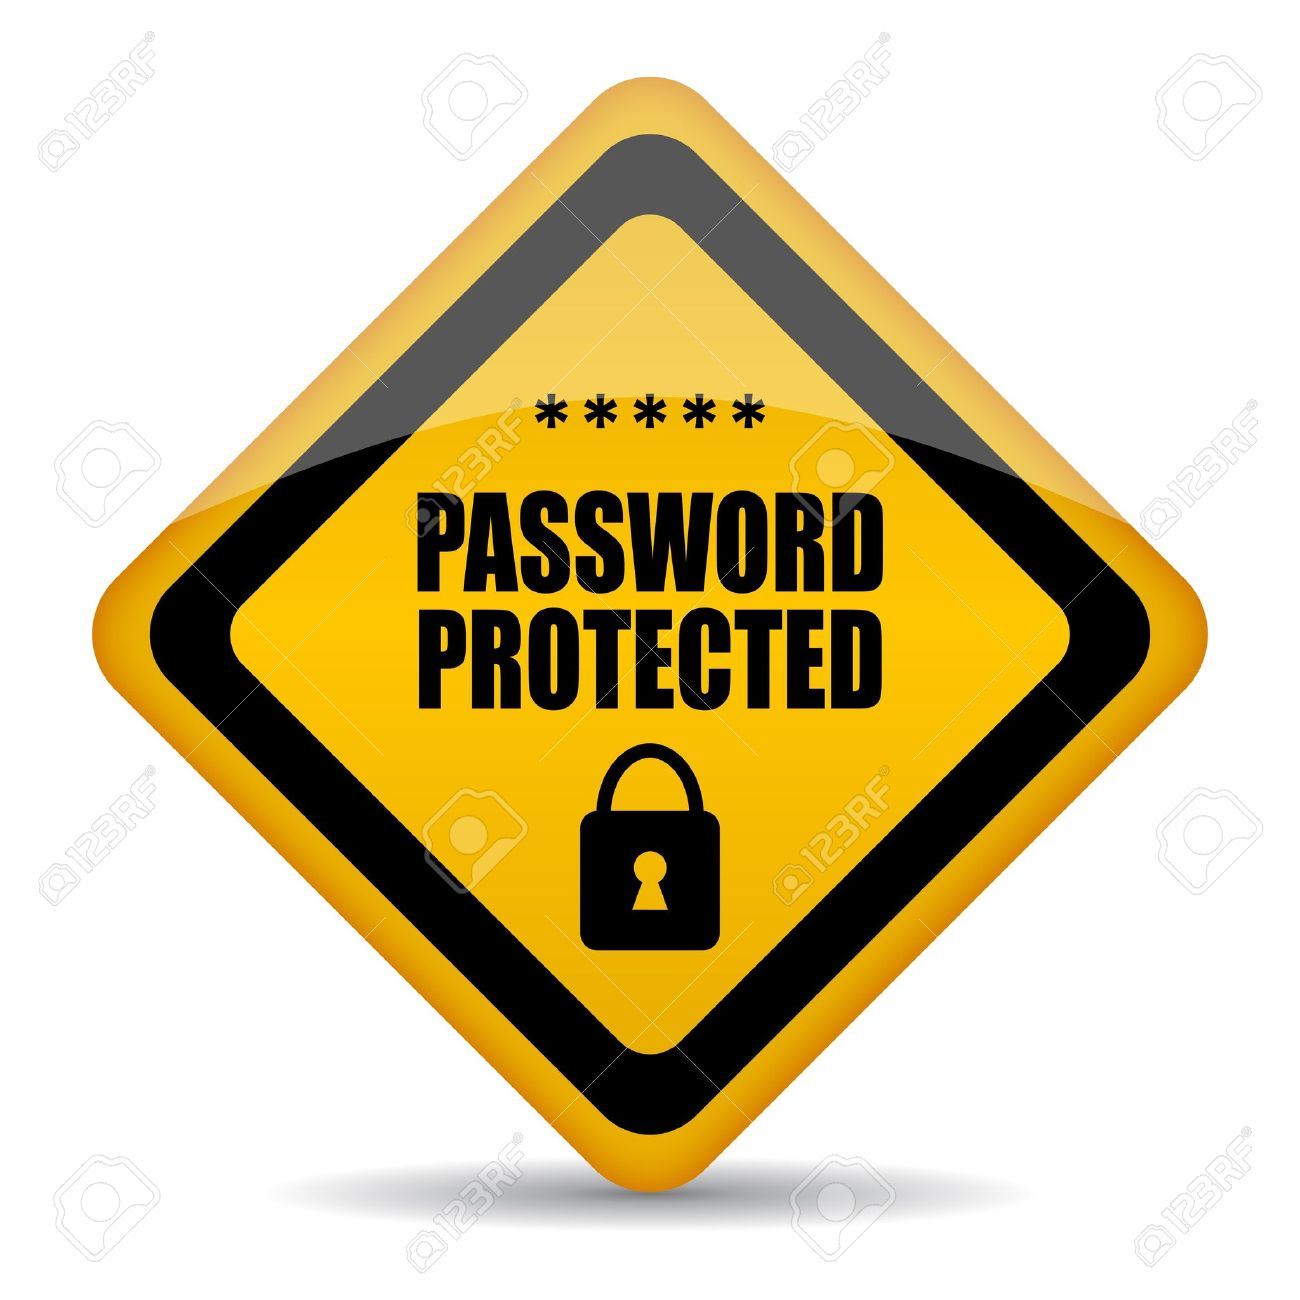 Vector Password Protected Sign Royalty Free Cliparts, Vectors, And ...